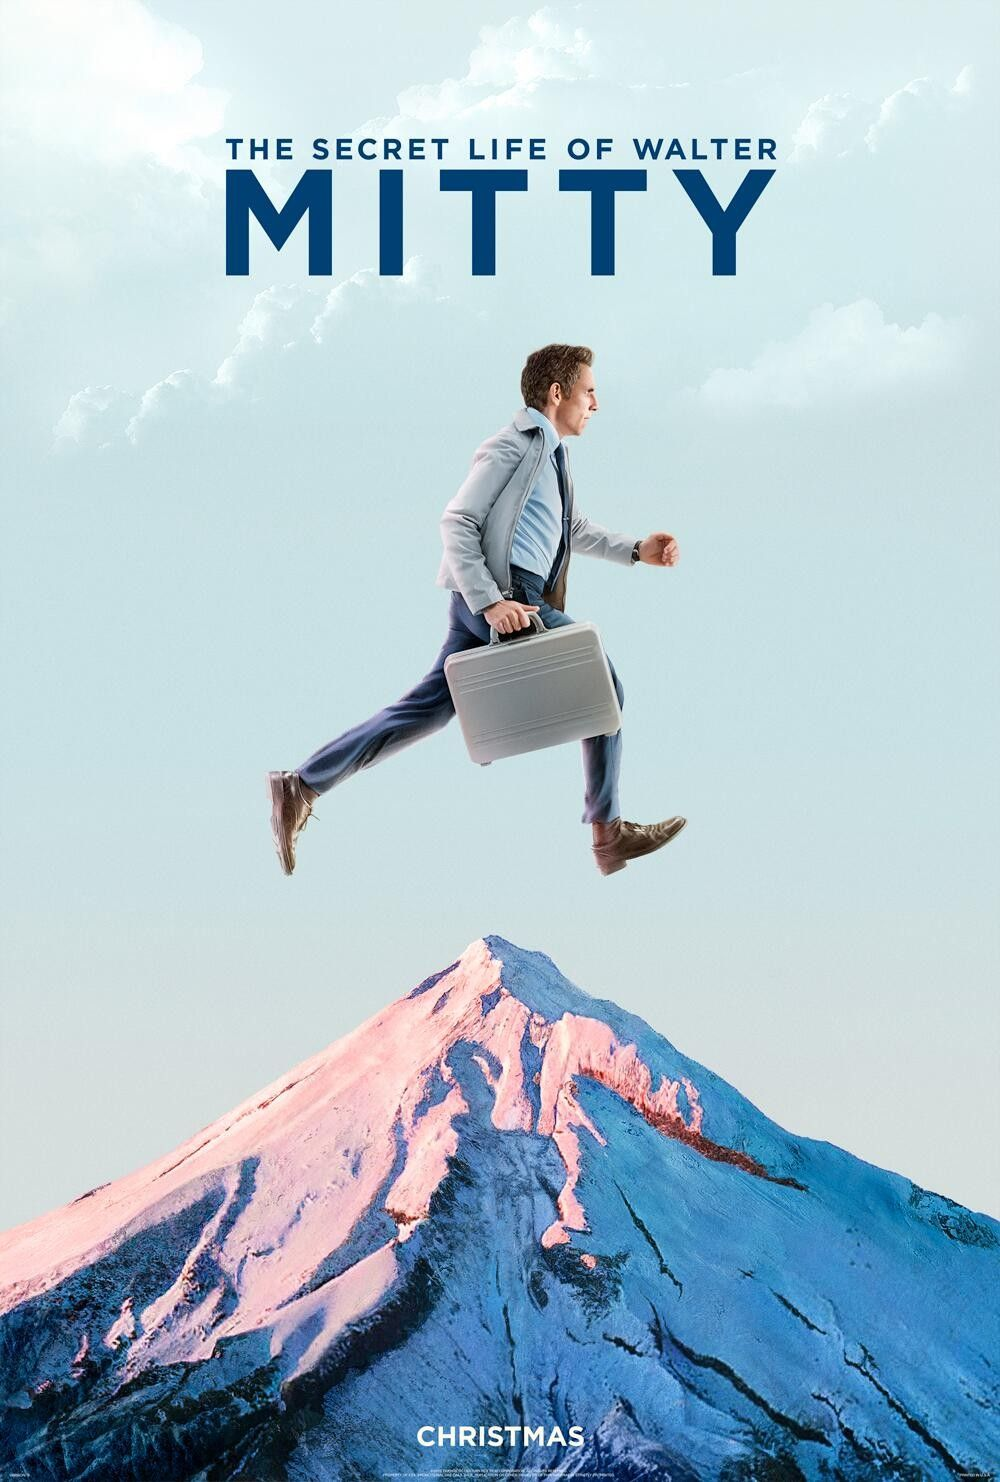 Character analysis of walter mitty in the secret life of walter mitty a short story by james thurber